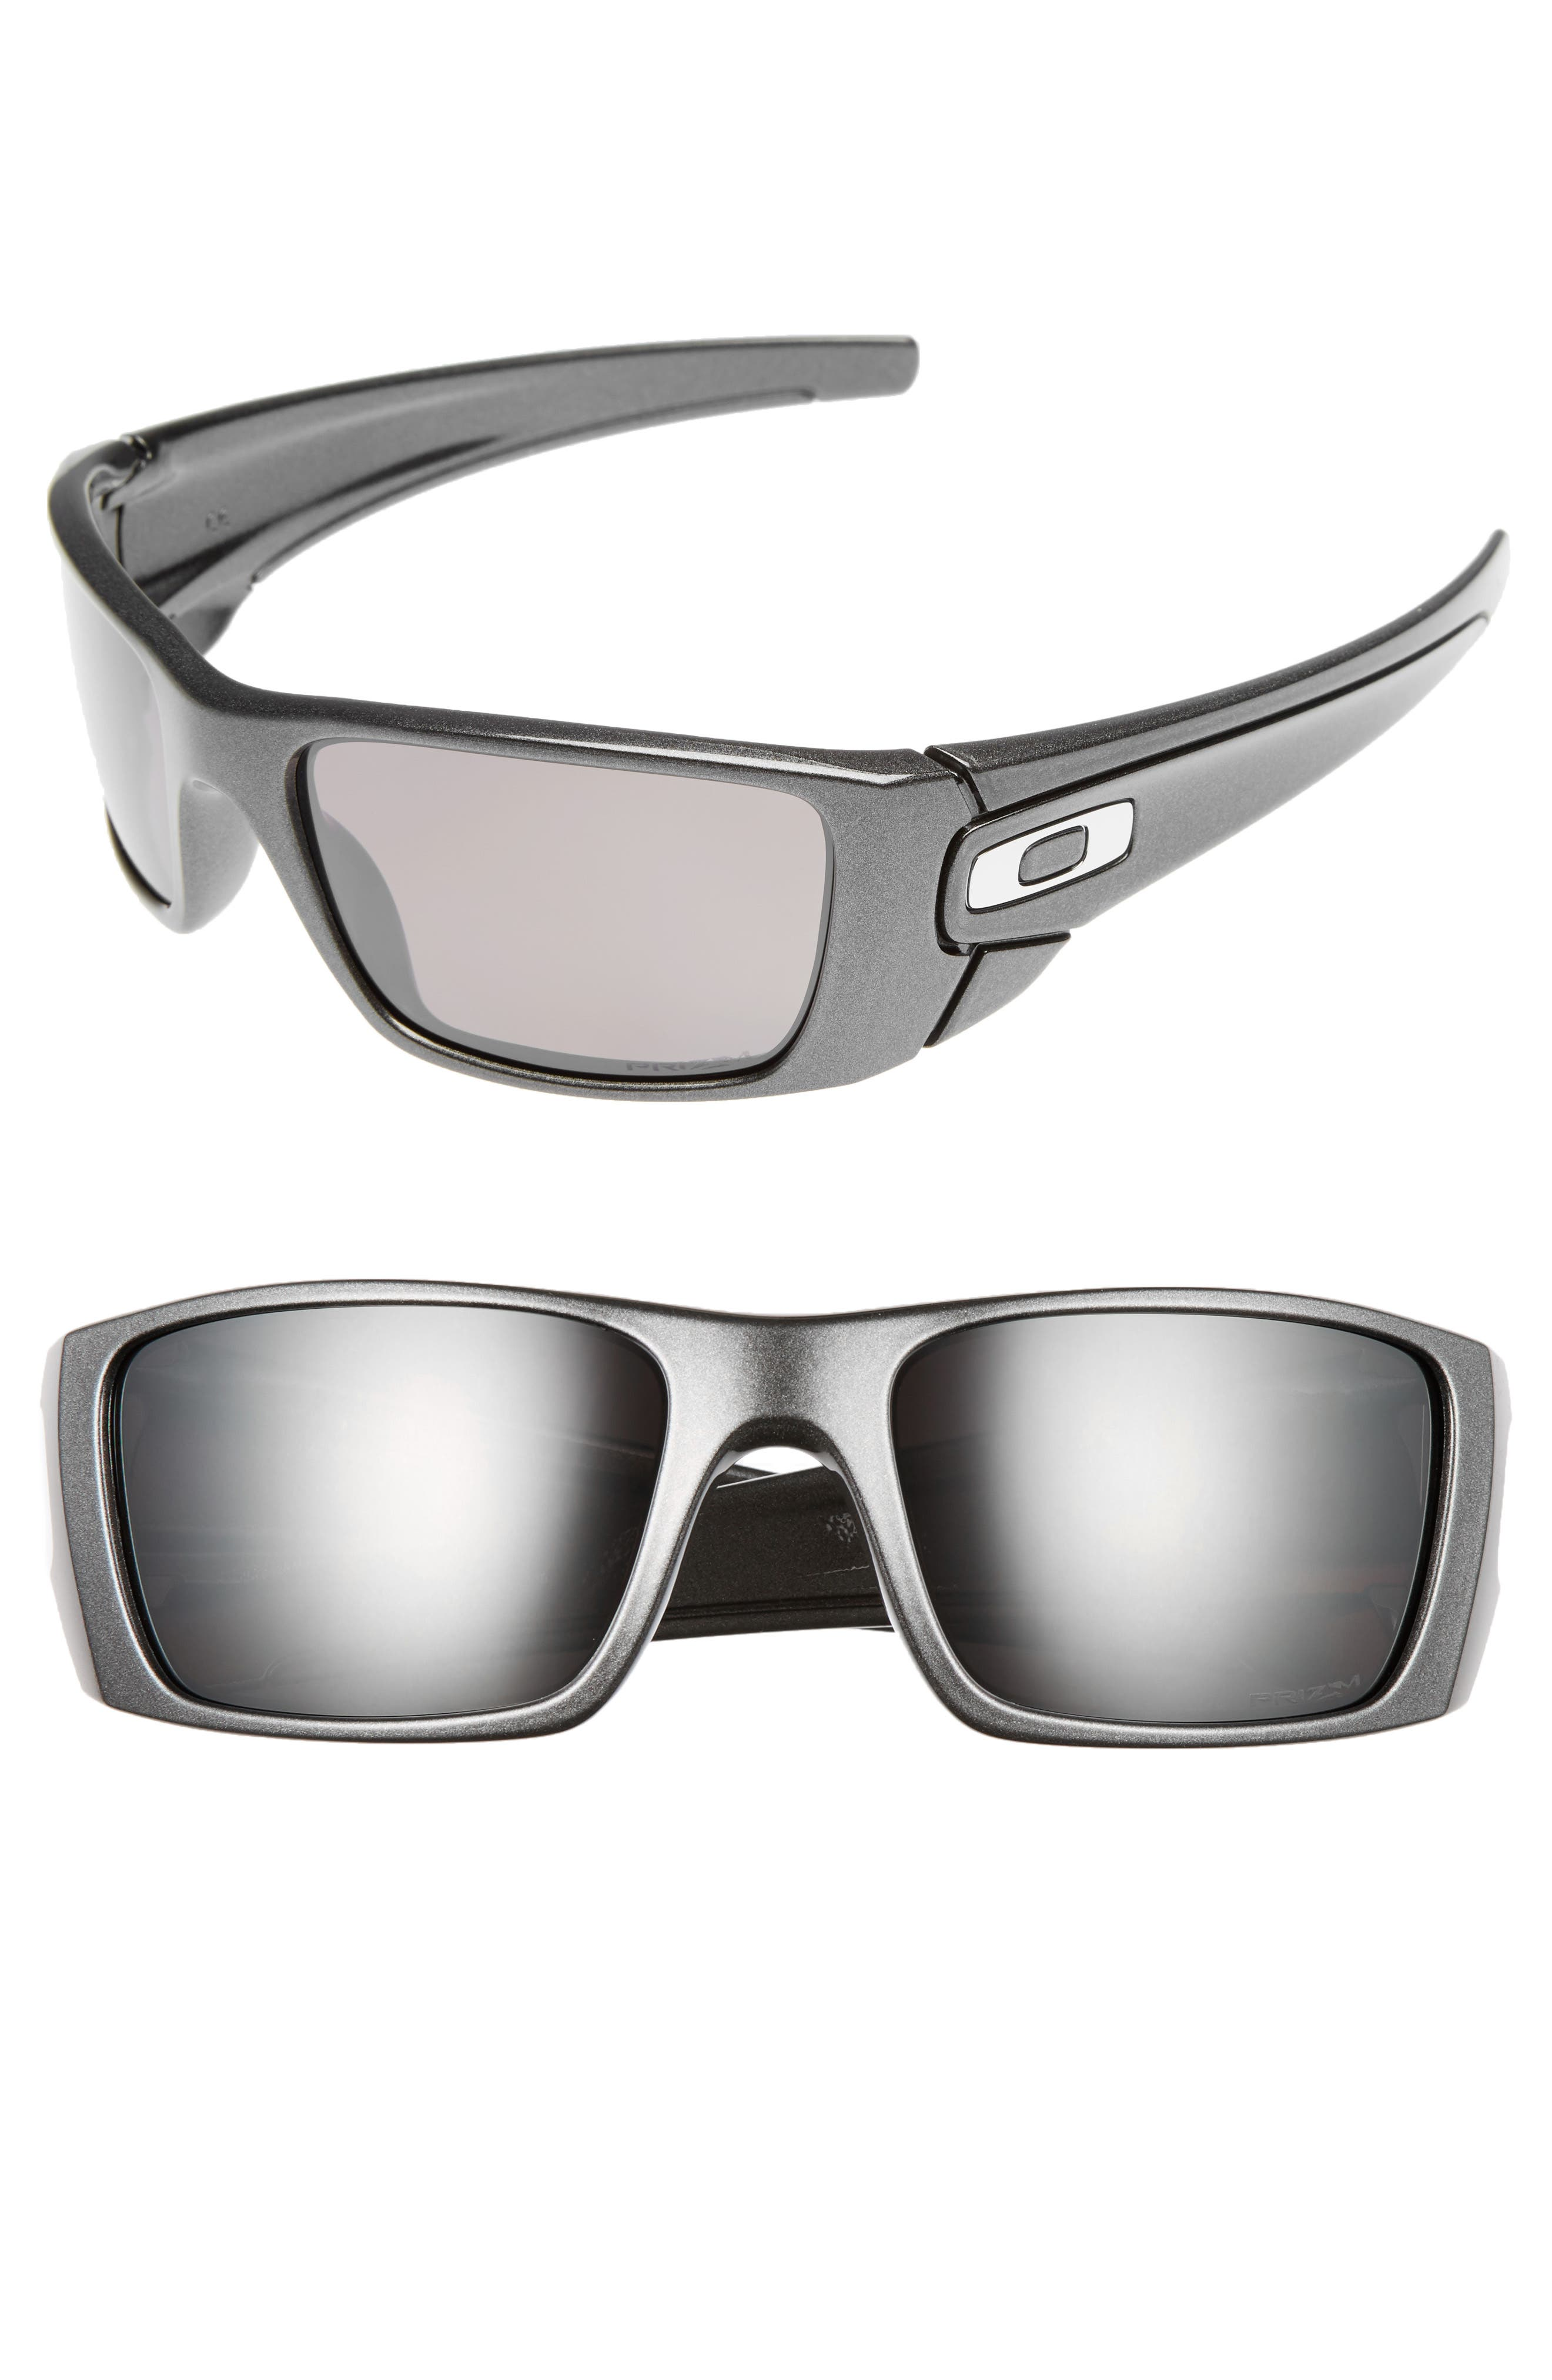 Fuel Cell 60mm Polarized Sunglasses,                             Main thumbnail 1, color,                             020